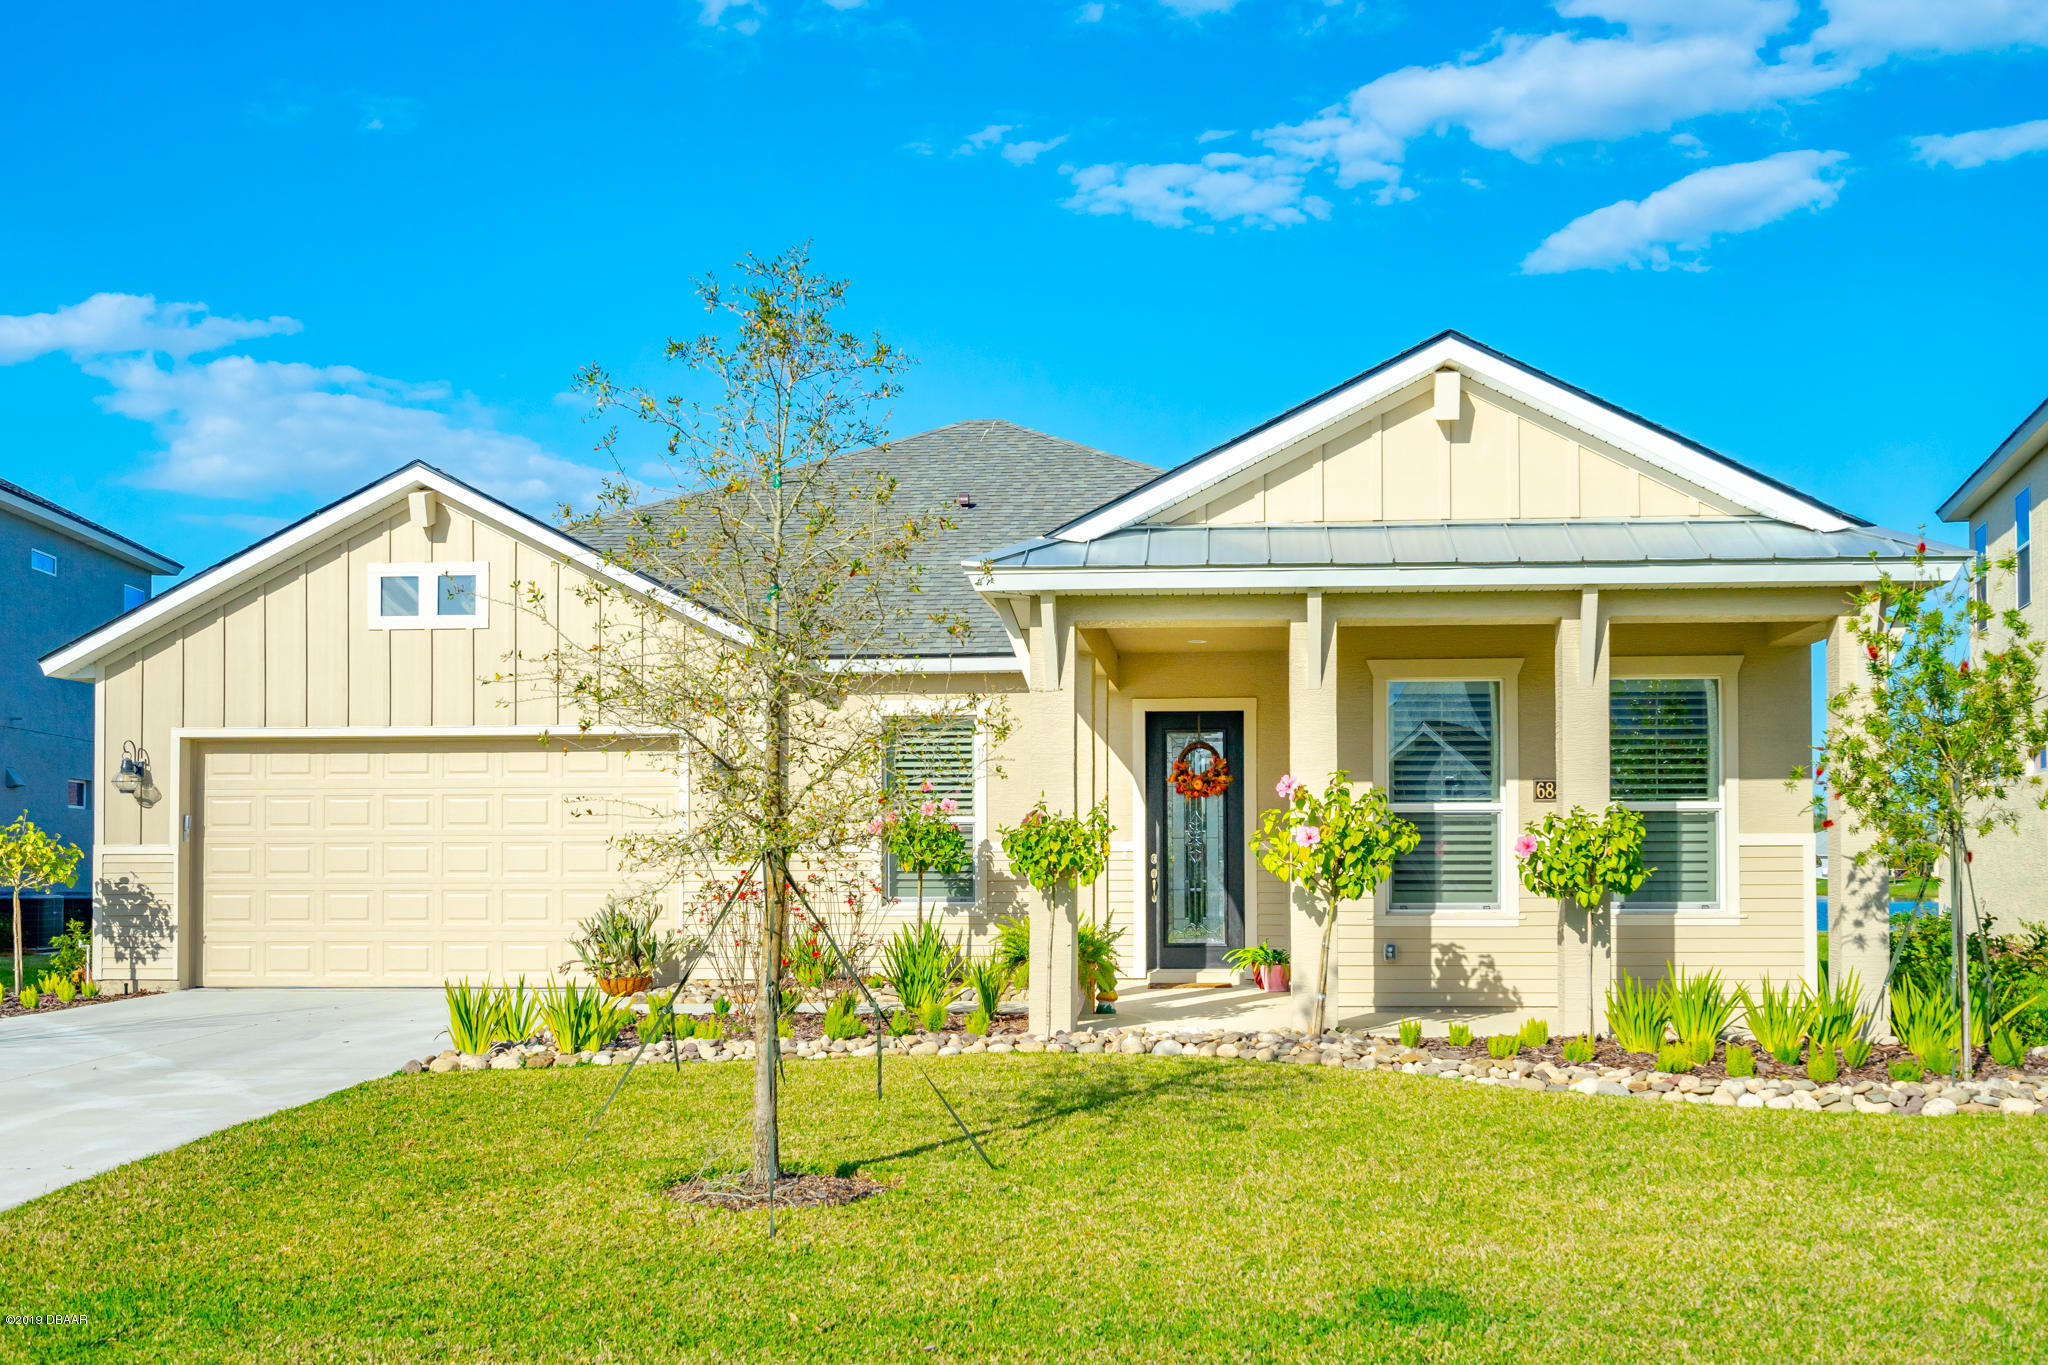 Photo of 6843 Forkmead Lane, Port Orange, FL 32128